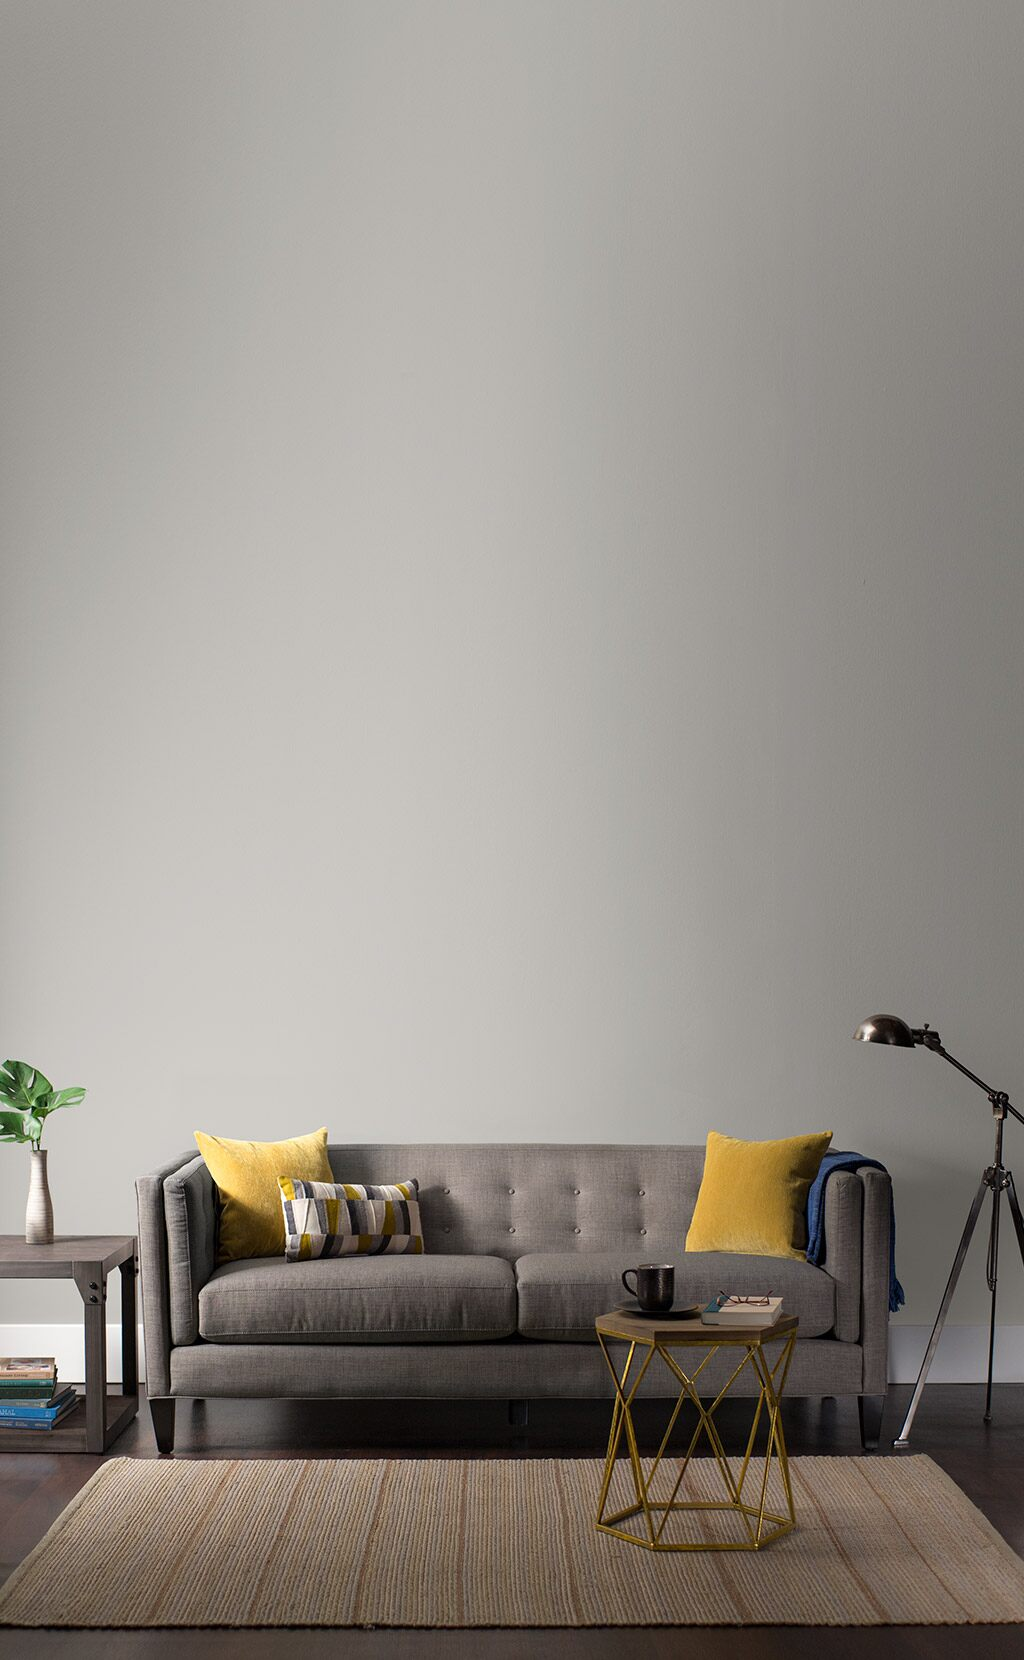 Gray living room with gray couch